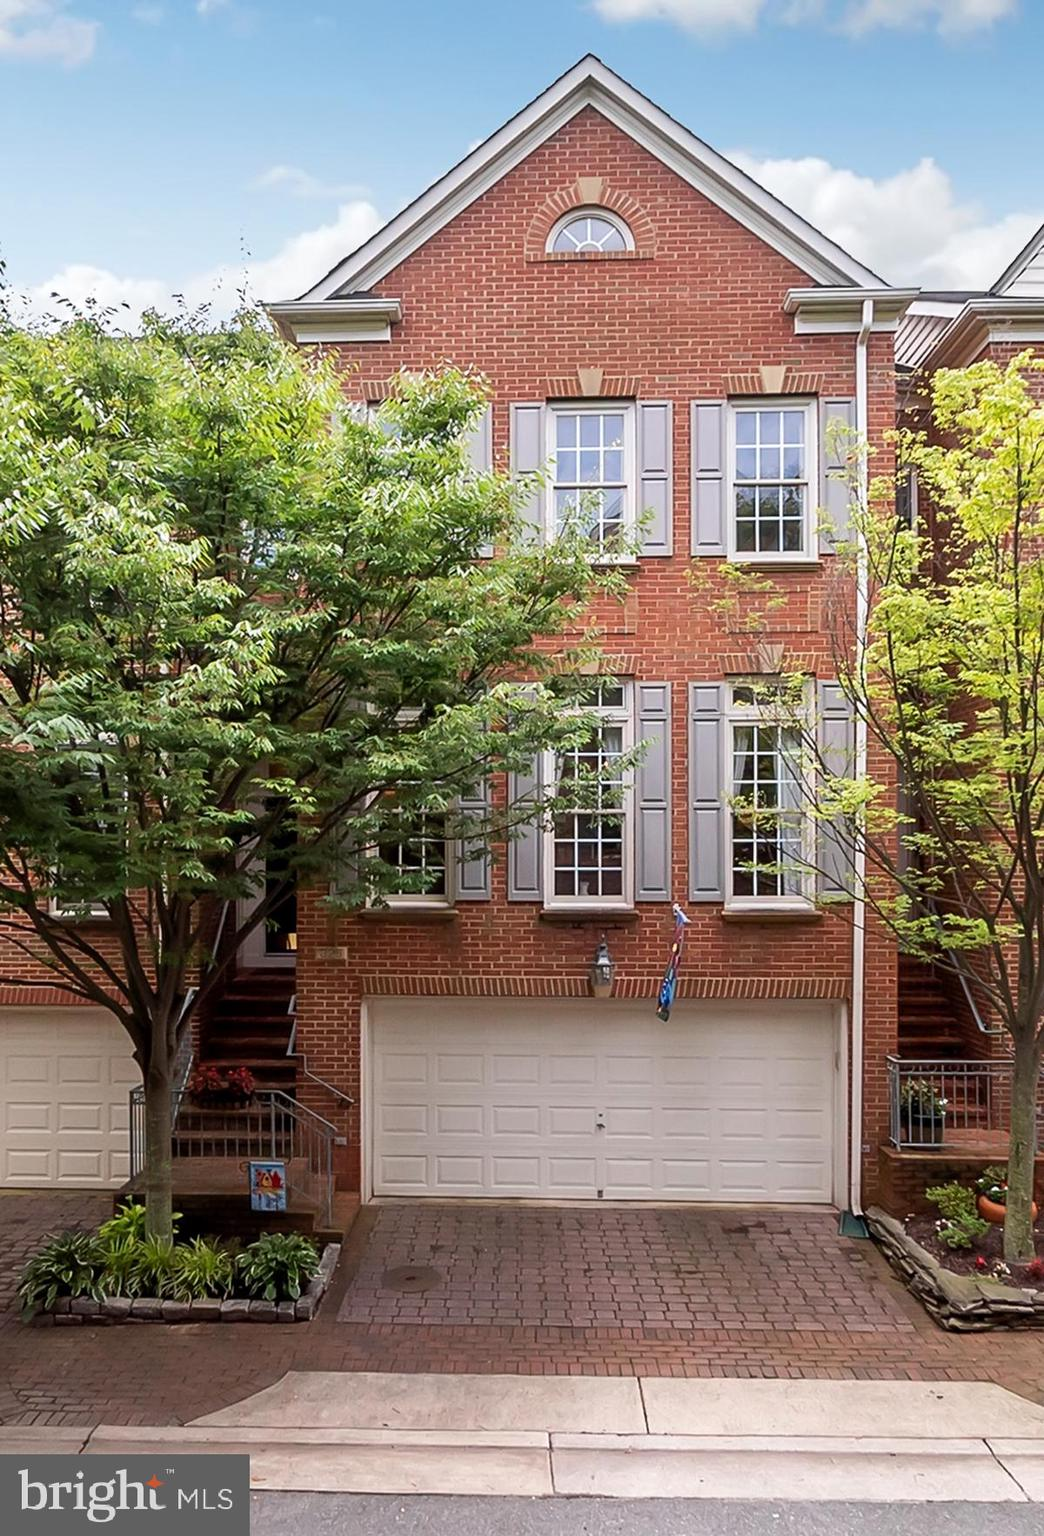 Please enjoy this 3 bedroom, 3 1/2 bathroom, 2594 sq.ft. townhouse in the sought-after Cameron Station, which is the premiere community in Alexandria's West End. This house is a rarely available 3-level NV Franklin model with upgrades throughout the house. This house offers its new owner mature tree privacy to enjoy your deck and patio, which is a highly desired feature within the community. The house opens to an entry where a designer-chosen pendant chandelier in an eye-pleasing Winter Gold finish is the welcoming design feature. The entry leads to an open Living Room and Dining Room, with a 9-foot ceiling, compound crown molding, and another designer light fixture in the Dining Room that provides visual appeal throughout the Main Level. The Dining Room leads to the open kitchen, which has an island for both food preparation and easy conversation, space for informal dining in front of a bank of three windows, and a large space for entertaining or relaxation. The kitchen offers the cook high-end granite (newly installed), a tile backsplash, hard-wired undercabinet lights and cove lighting, black appliances, and mahogany finish cabinets. The open kitchen space leads to a deck which offers mature tree privacy, which is enhanced by the retractable awning. While the view looking out from the deck is a green-screen view, the view looking down at the enclosed patio area delights the eye with the professional landscape design choices, with a green lace-leaf Japanese maple the main focal point. The half bath is on the Main Level, with a Kohler pedestal sink, upgraded Moen fixtures and accessories, framed mirror, and light fixture. The Master Bedroom is sized to fit a King-size bed with a tray ceiling, three windows to allow in natural light, and a large walk-in closet. The Master Bathroom has dual vanities, a separate tub and shower, and a Water Closet for privacy. The entire bedroom level has hardwood floors. The two spare bedrooms are each sized for a Queen bed with a dou